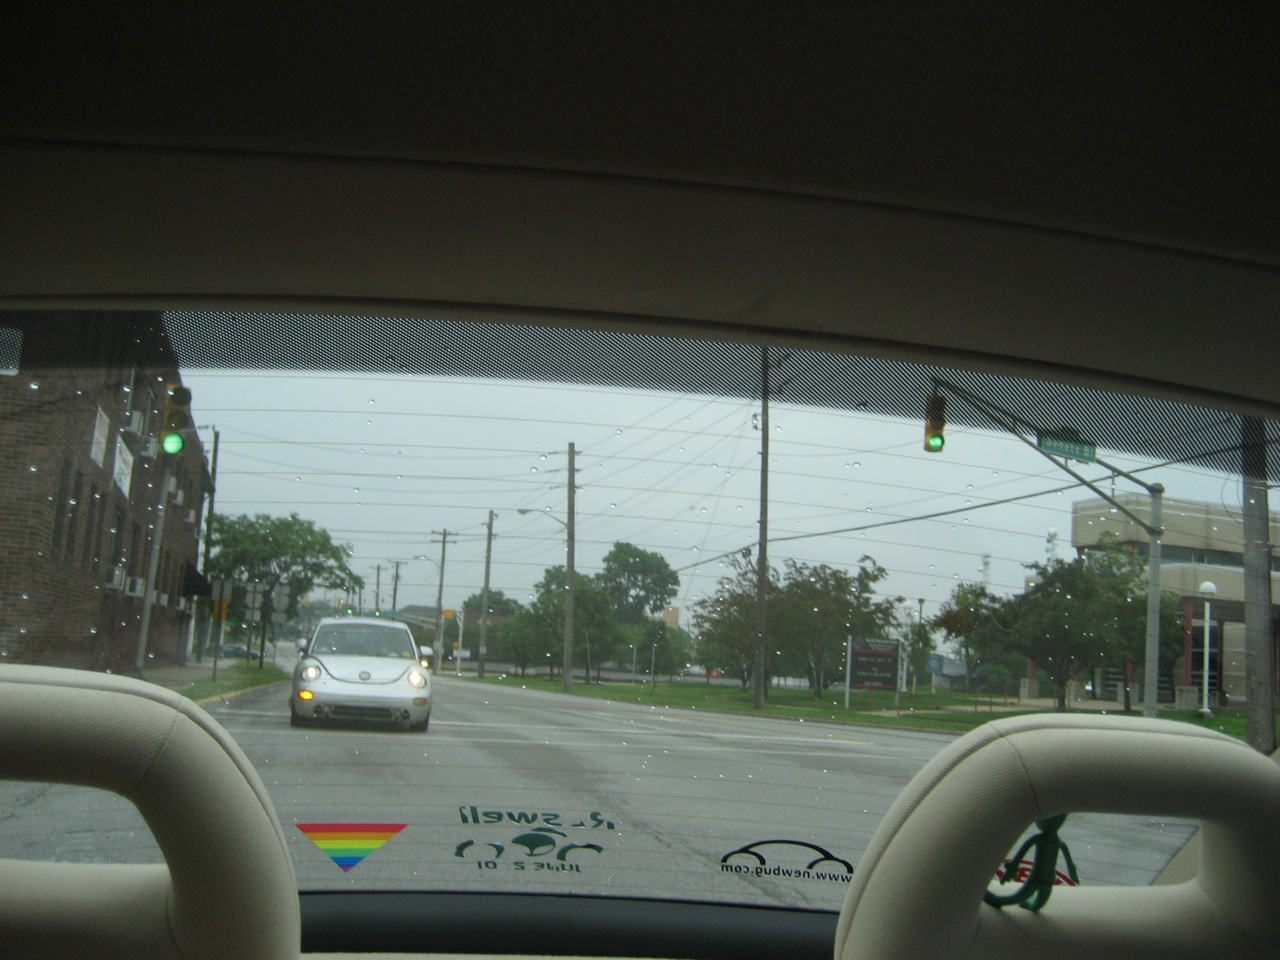 Spacepod in rear view